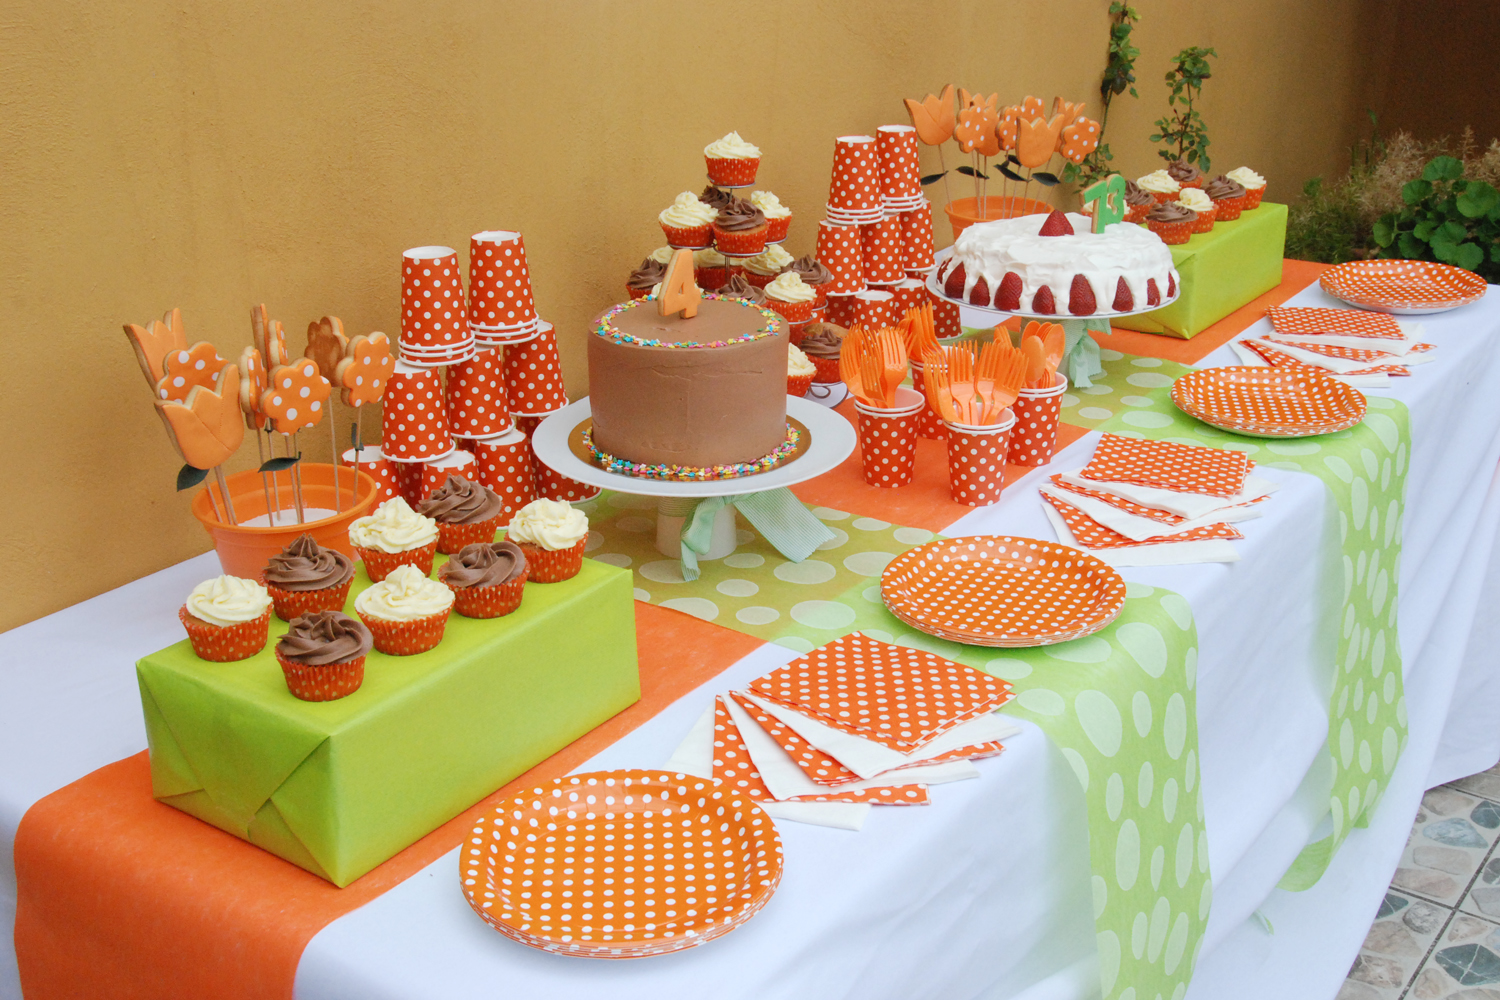 Galletas lazos cumplea os en archidona for Decoracion cumpleanos nino